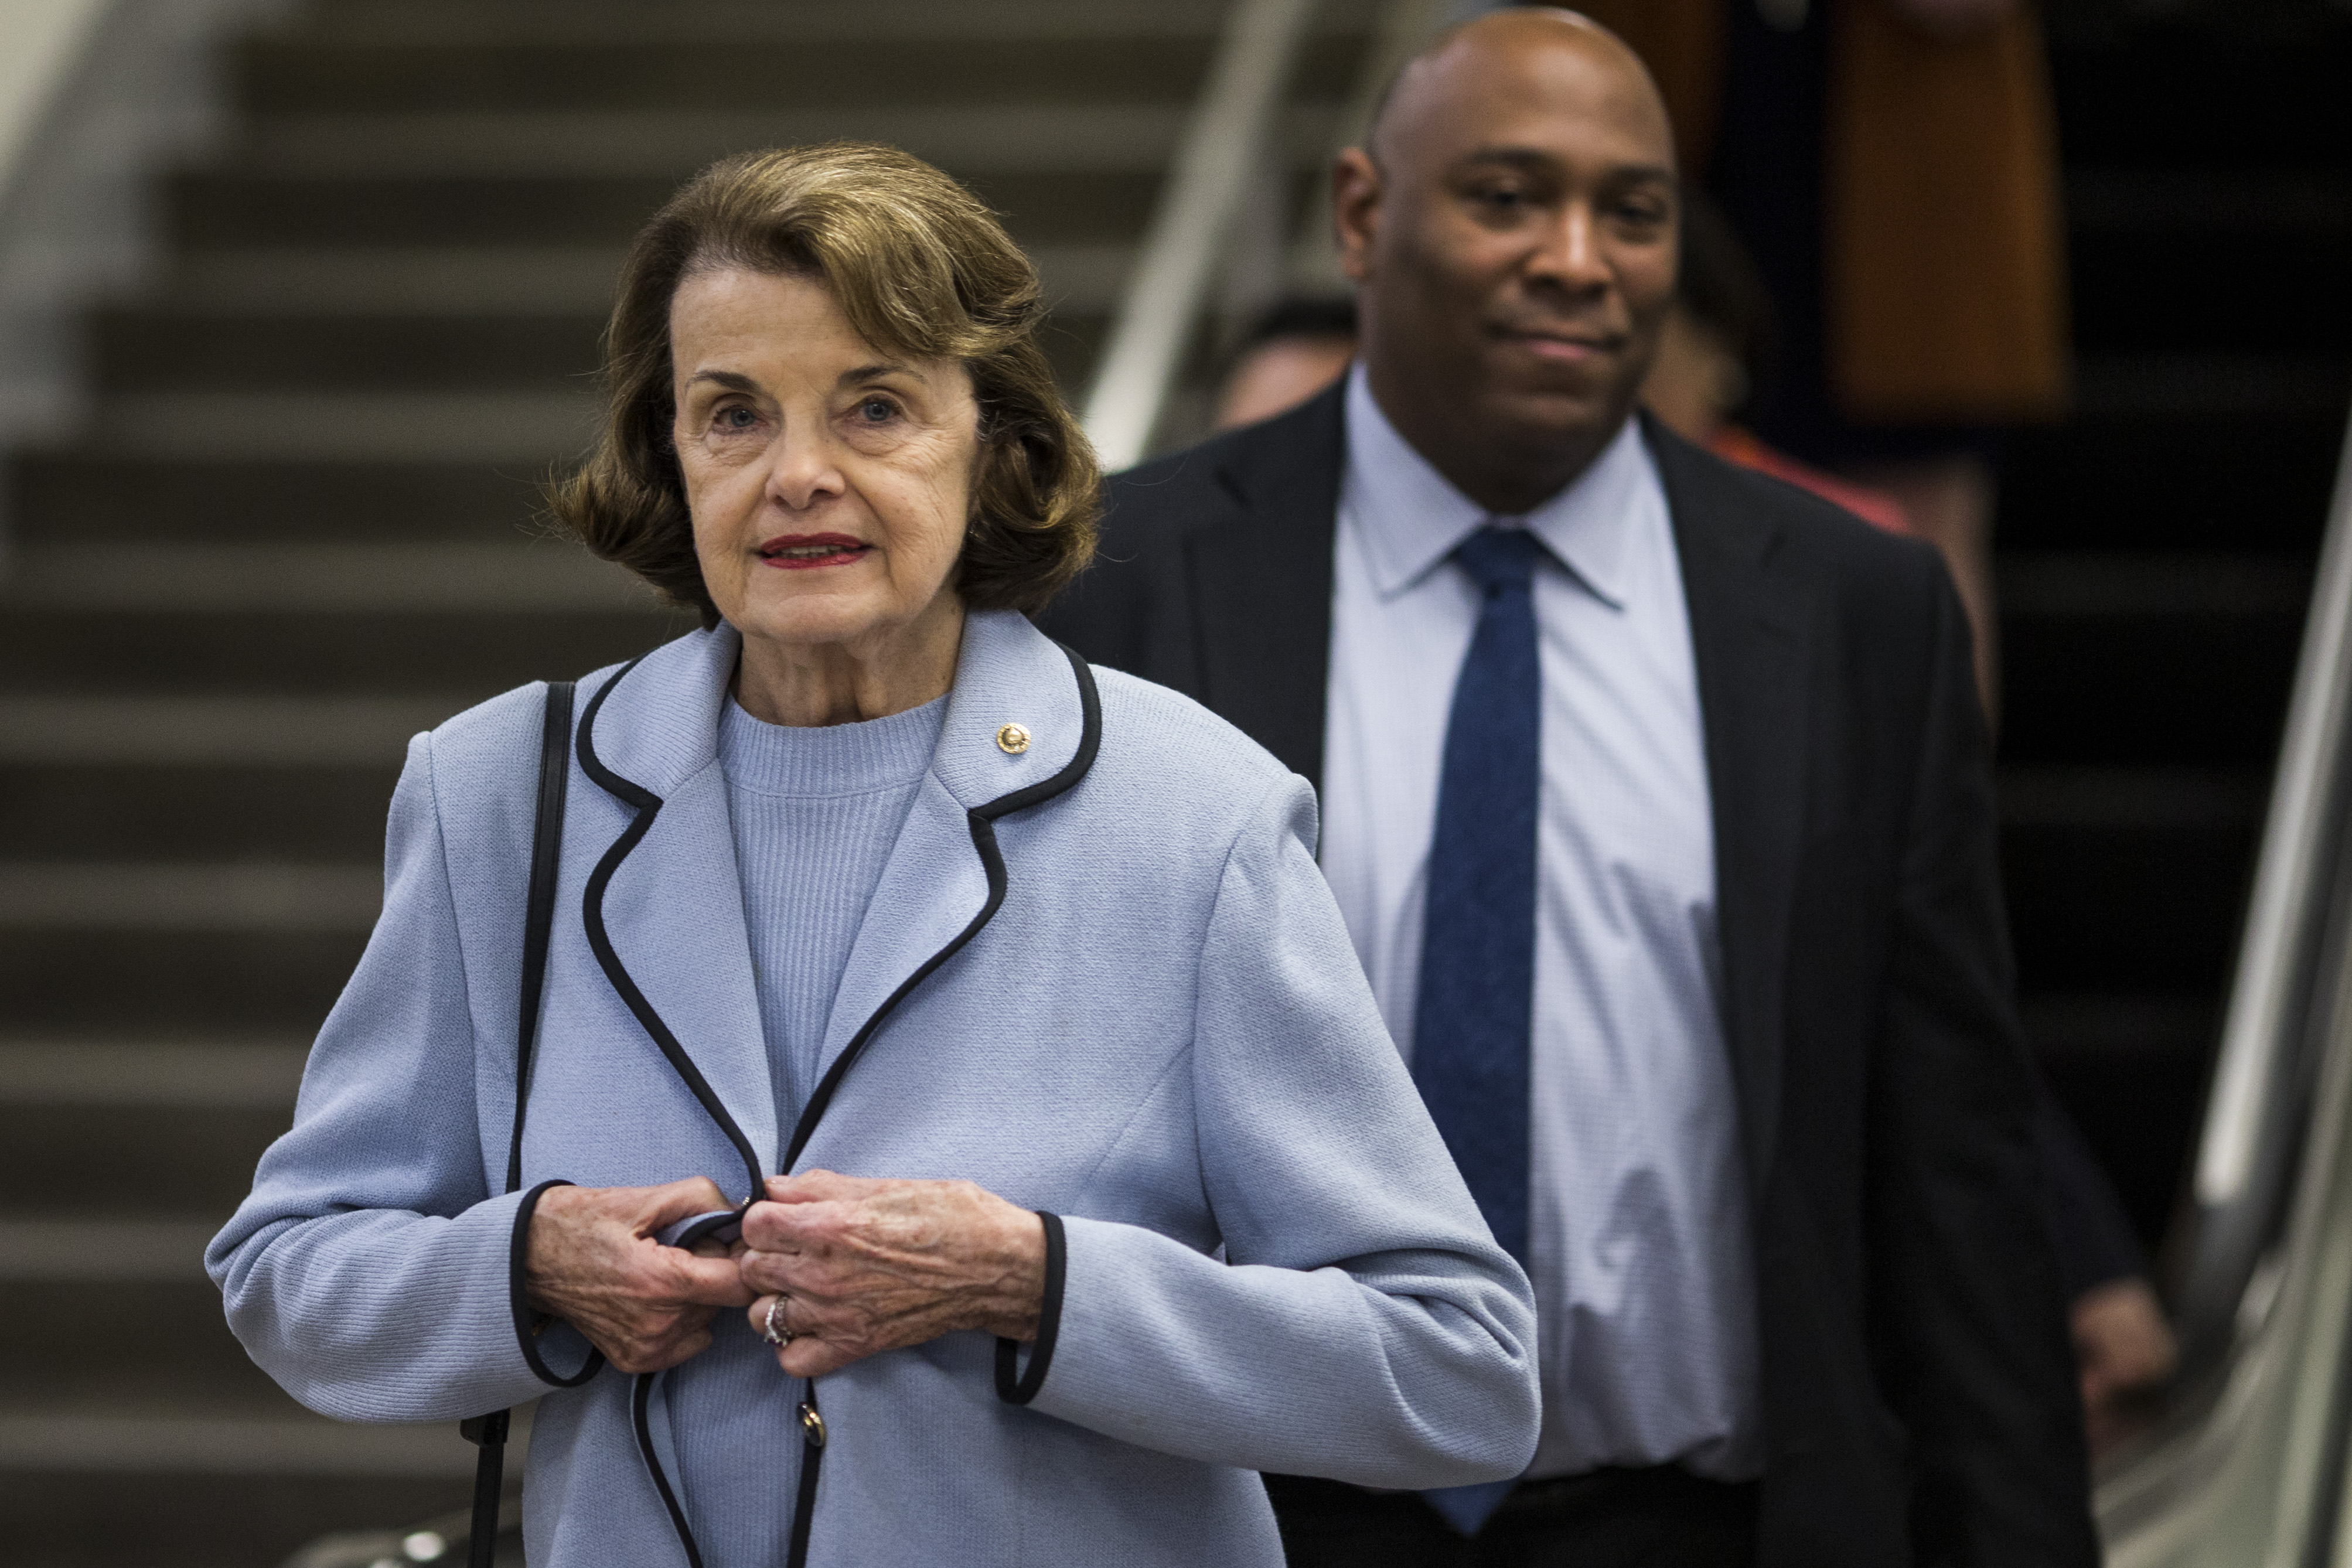 Dianne Feinstein, senadora demócrata . (Zach Gibson/Getty Images/AFP)